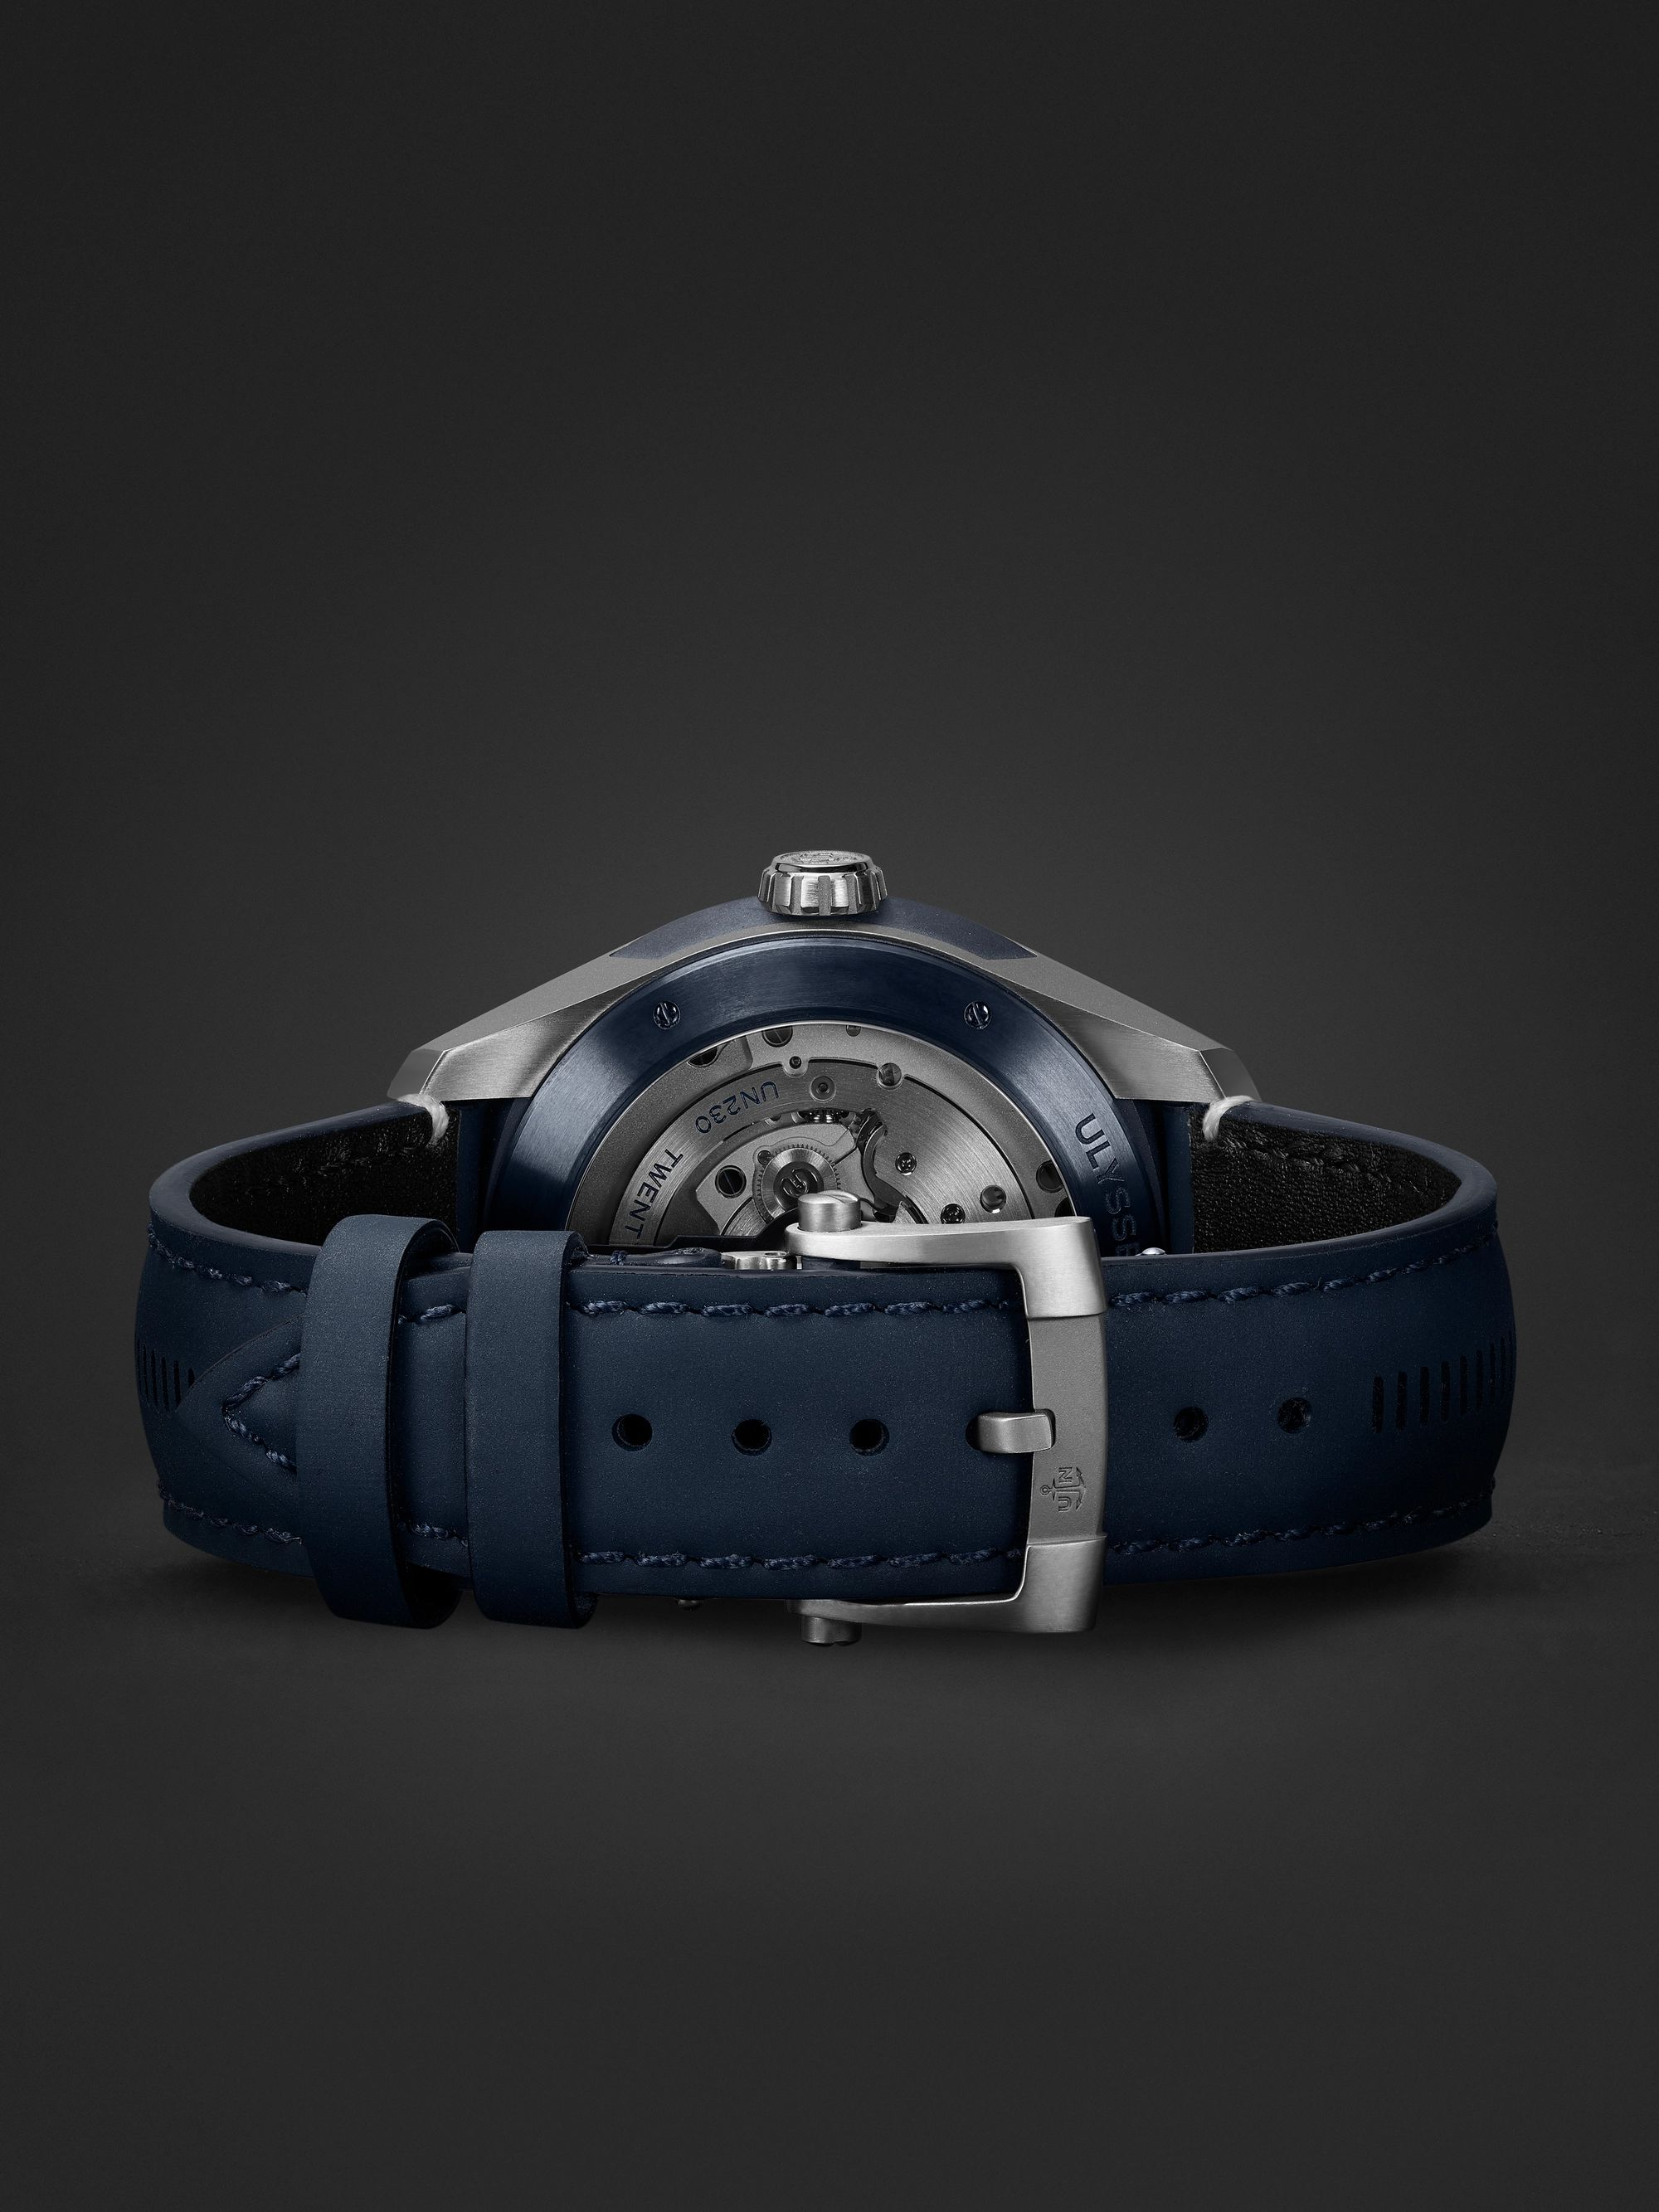 Ulysse Nardin Freak X Automatic 43mm Titanium and Leather Watch, Ref. No. 2303-270.1/03